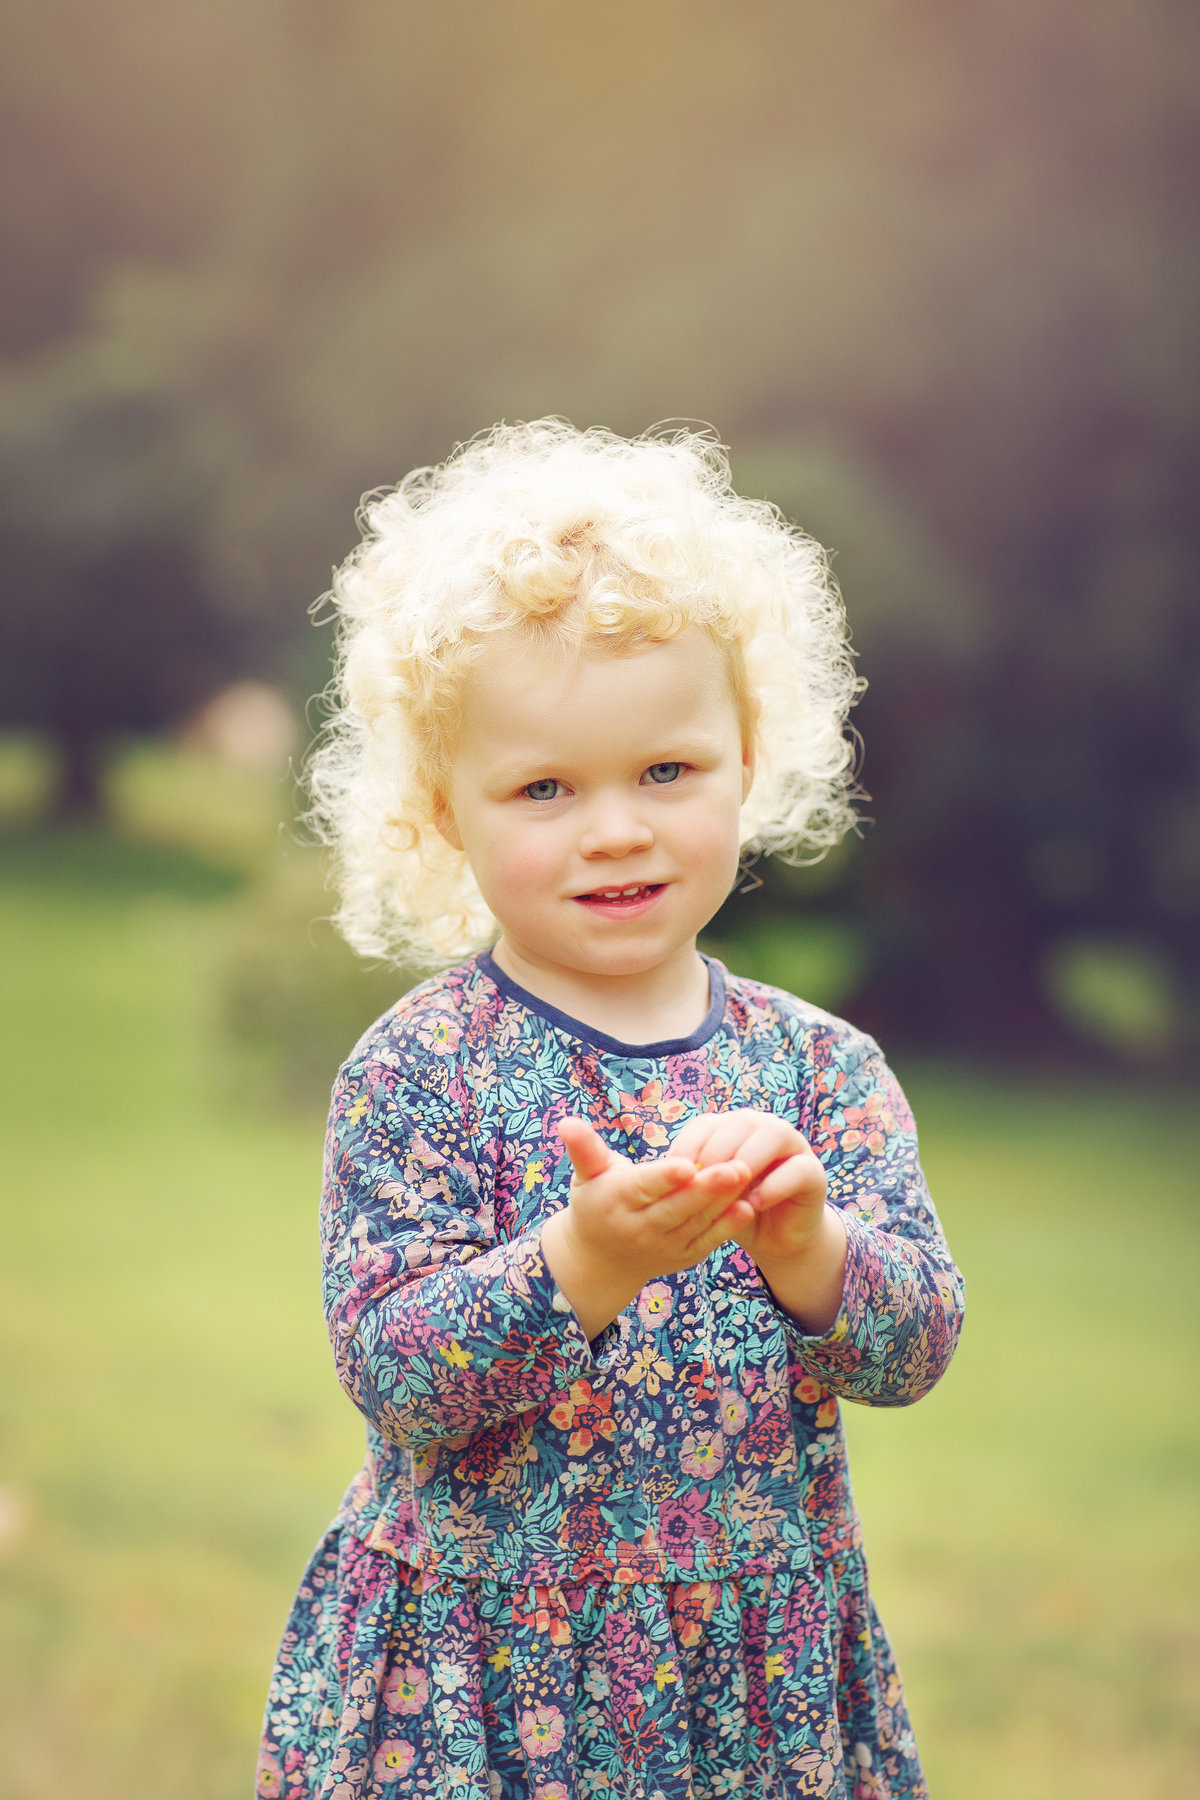 little girl with blonde curly hair